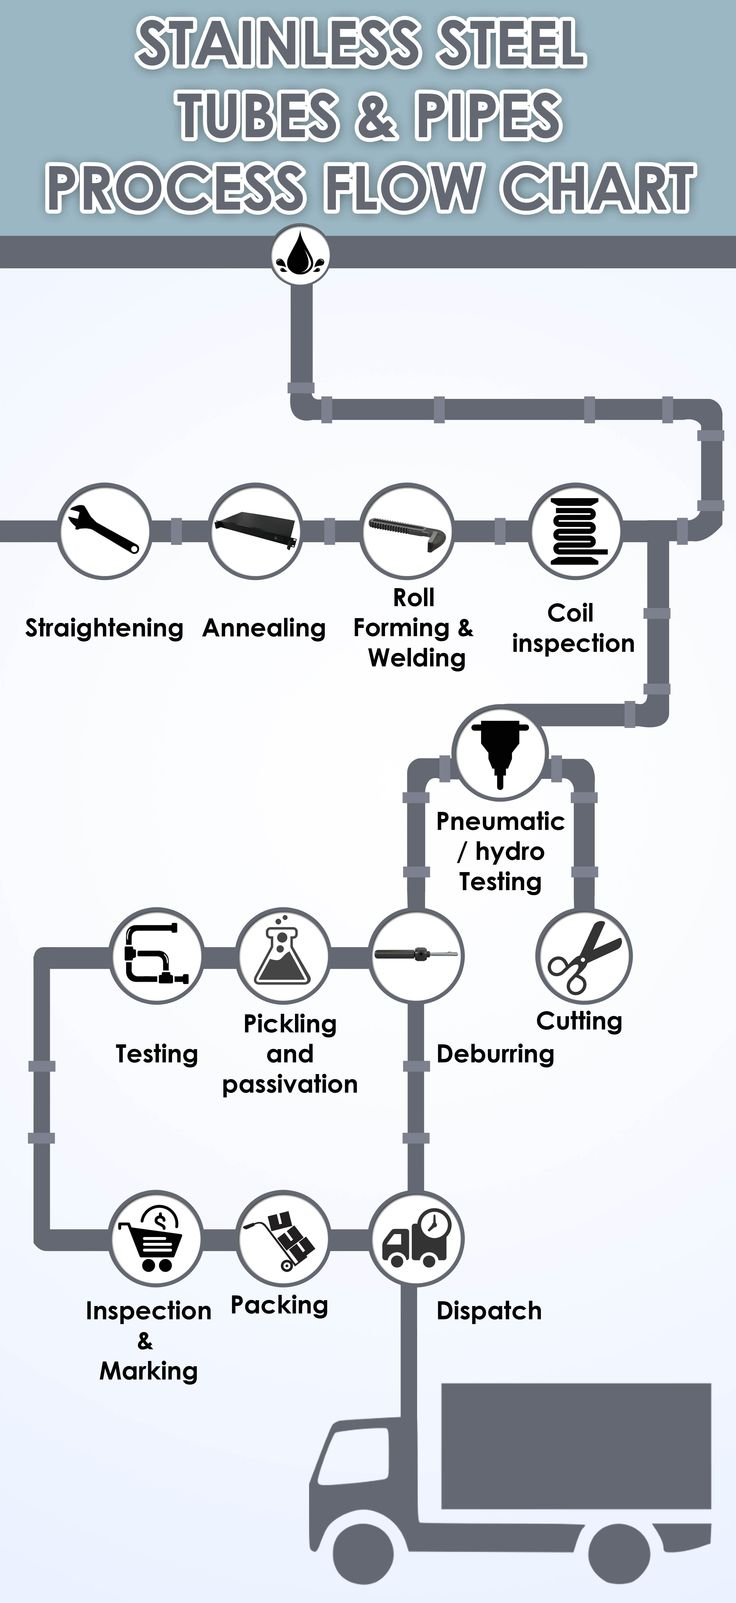 Hacketts Pipeline supply and distribute quality industrial pipe system supplies to professional installers, engineers and OEM's who specialise in the storage and transfer of air, water, oil, gas, steam and biomass applications. Visit: http://www.hackettspipeline.co.uk/